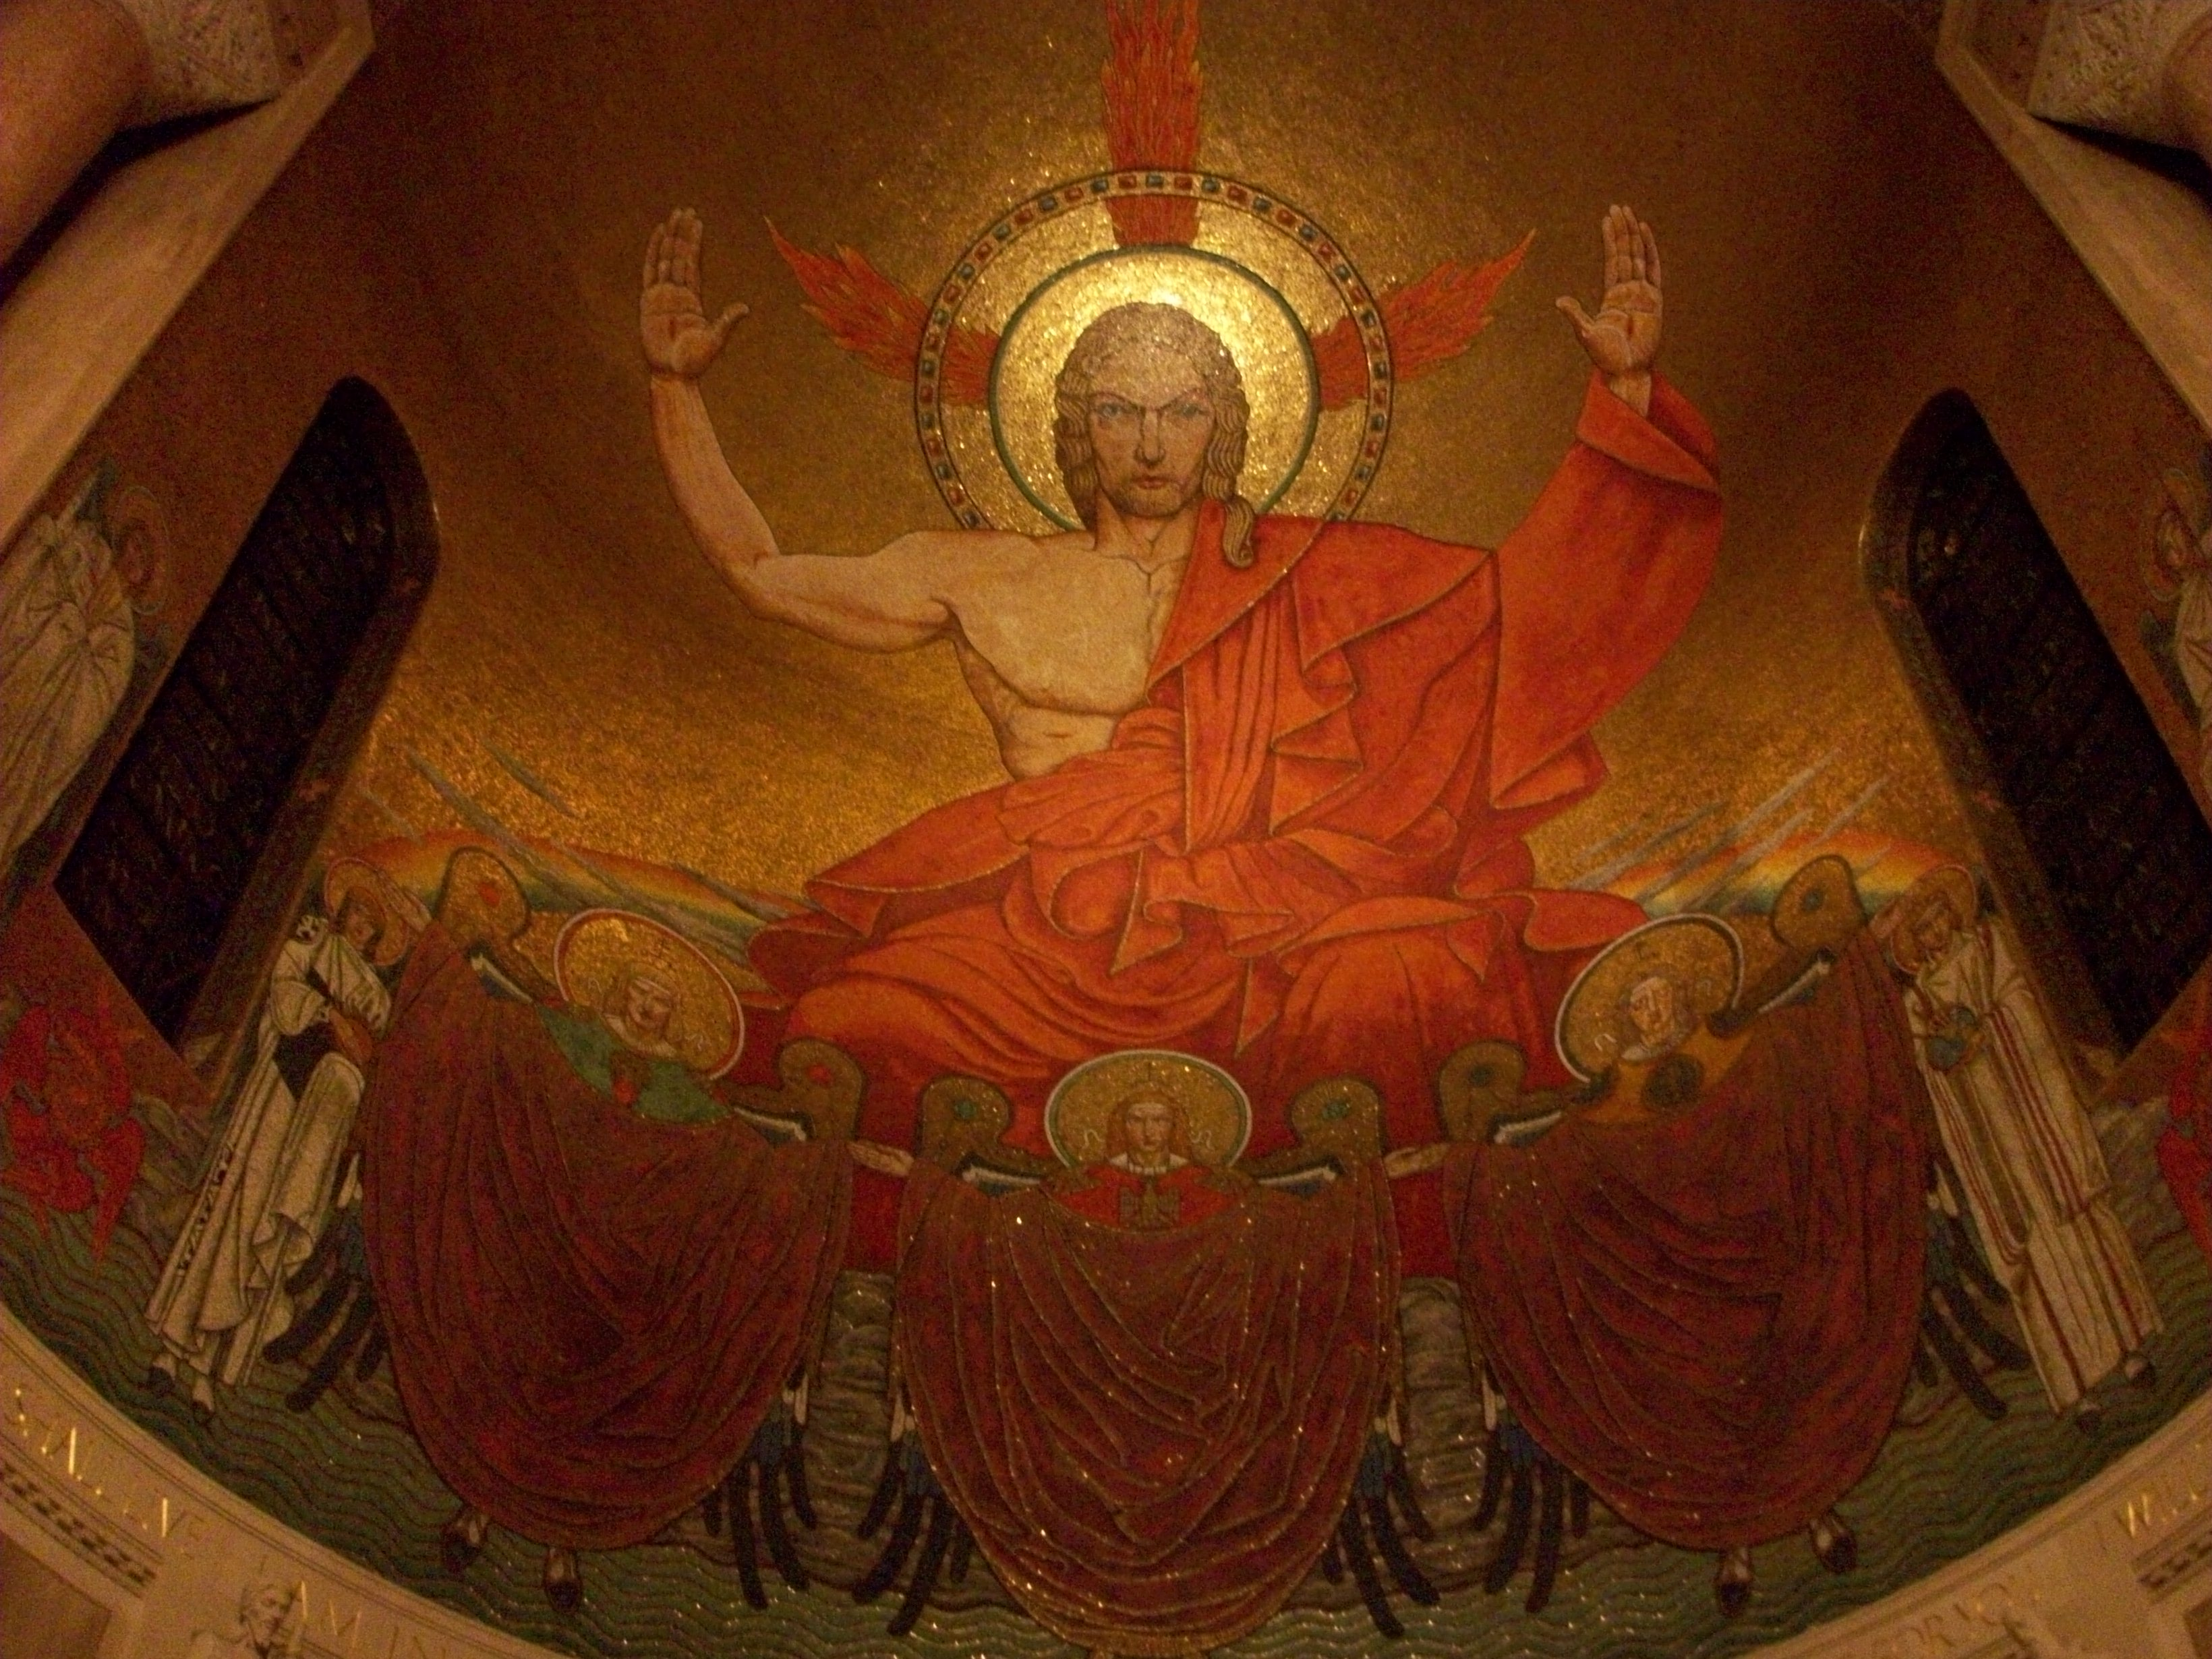 background history on the the shrine of the immaculate conception